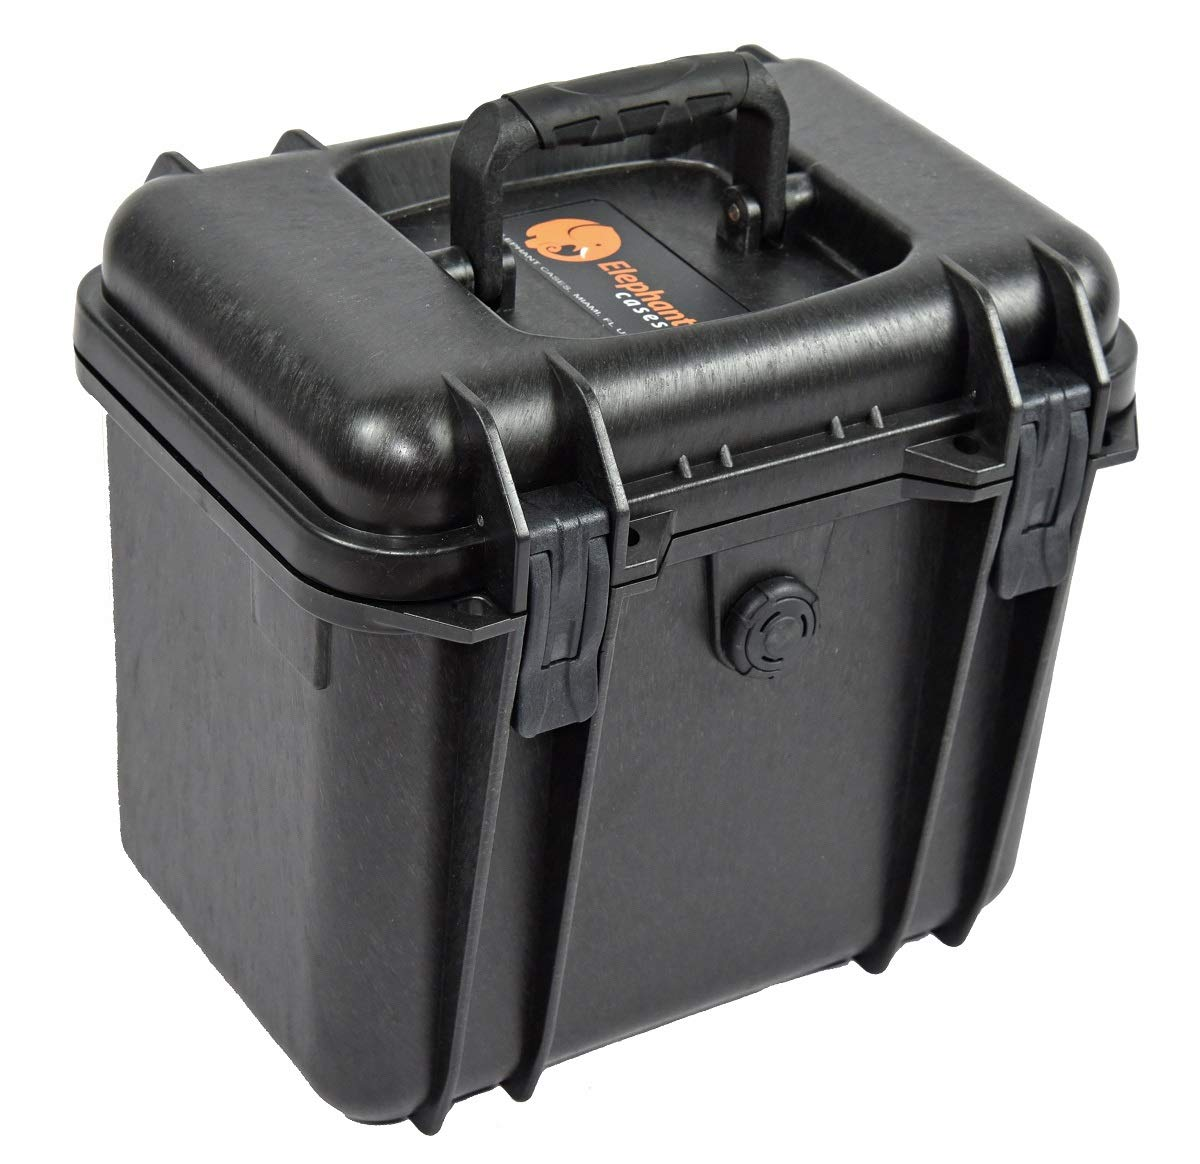 Elephant E140T Case with Foam for Camera, Video, Guns, Test and Metering Equipment Waterproof Hard Plastic Case